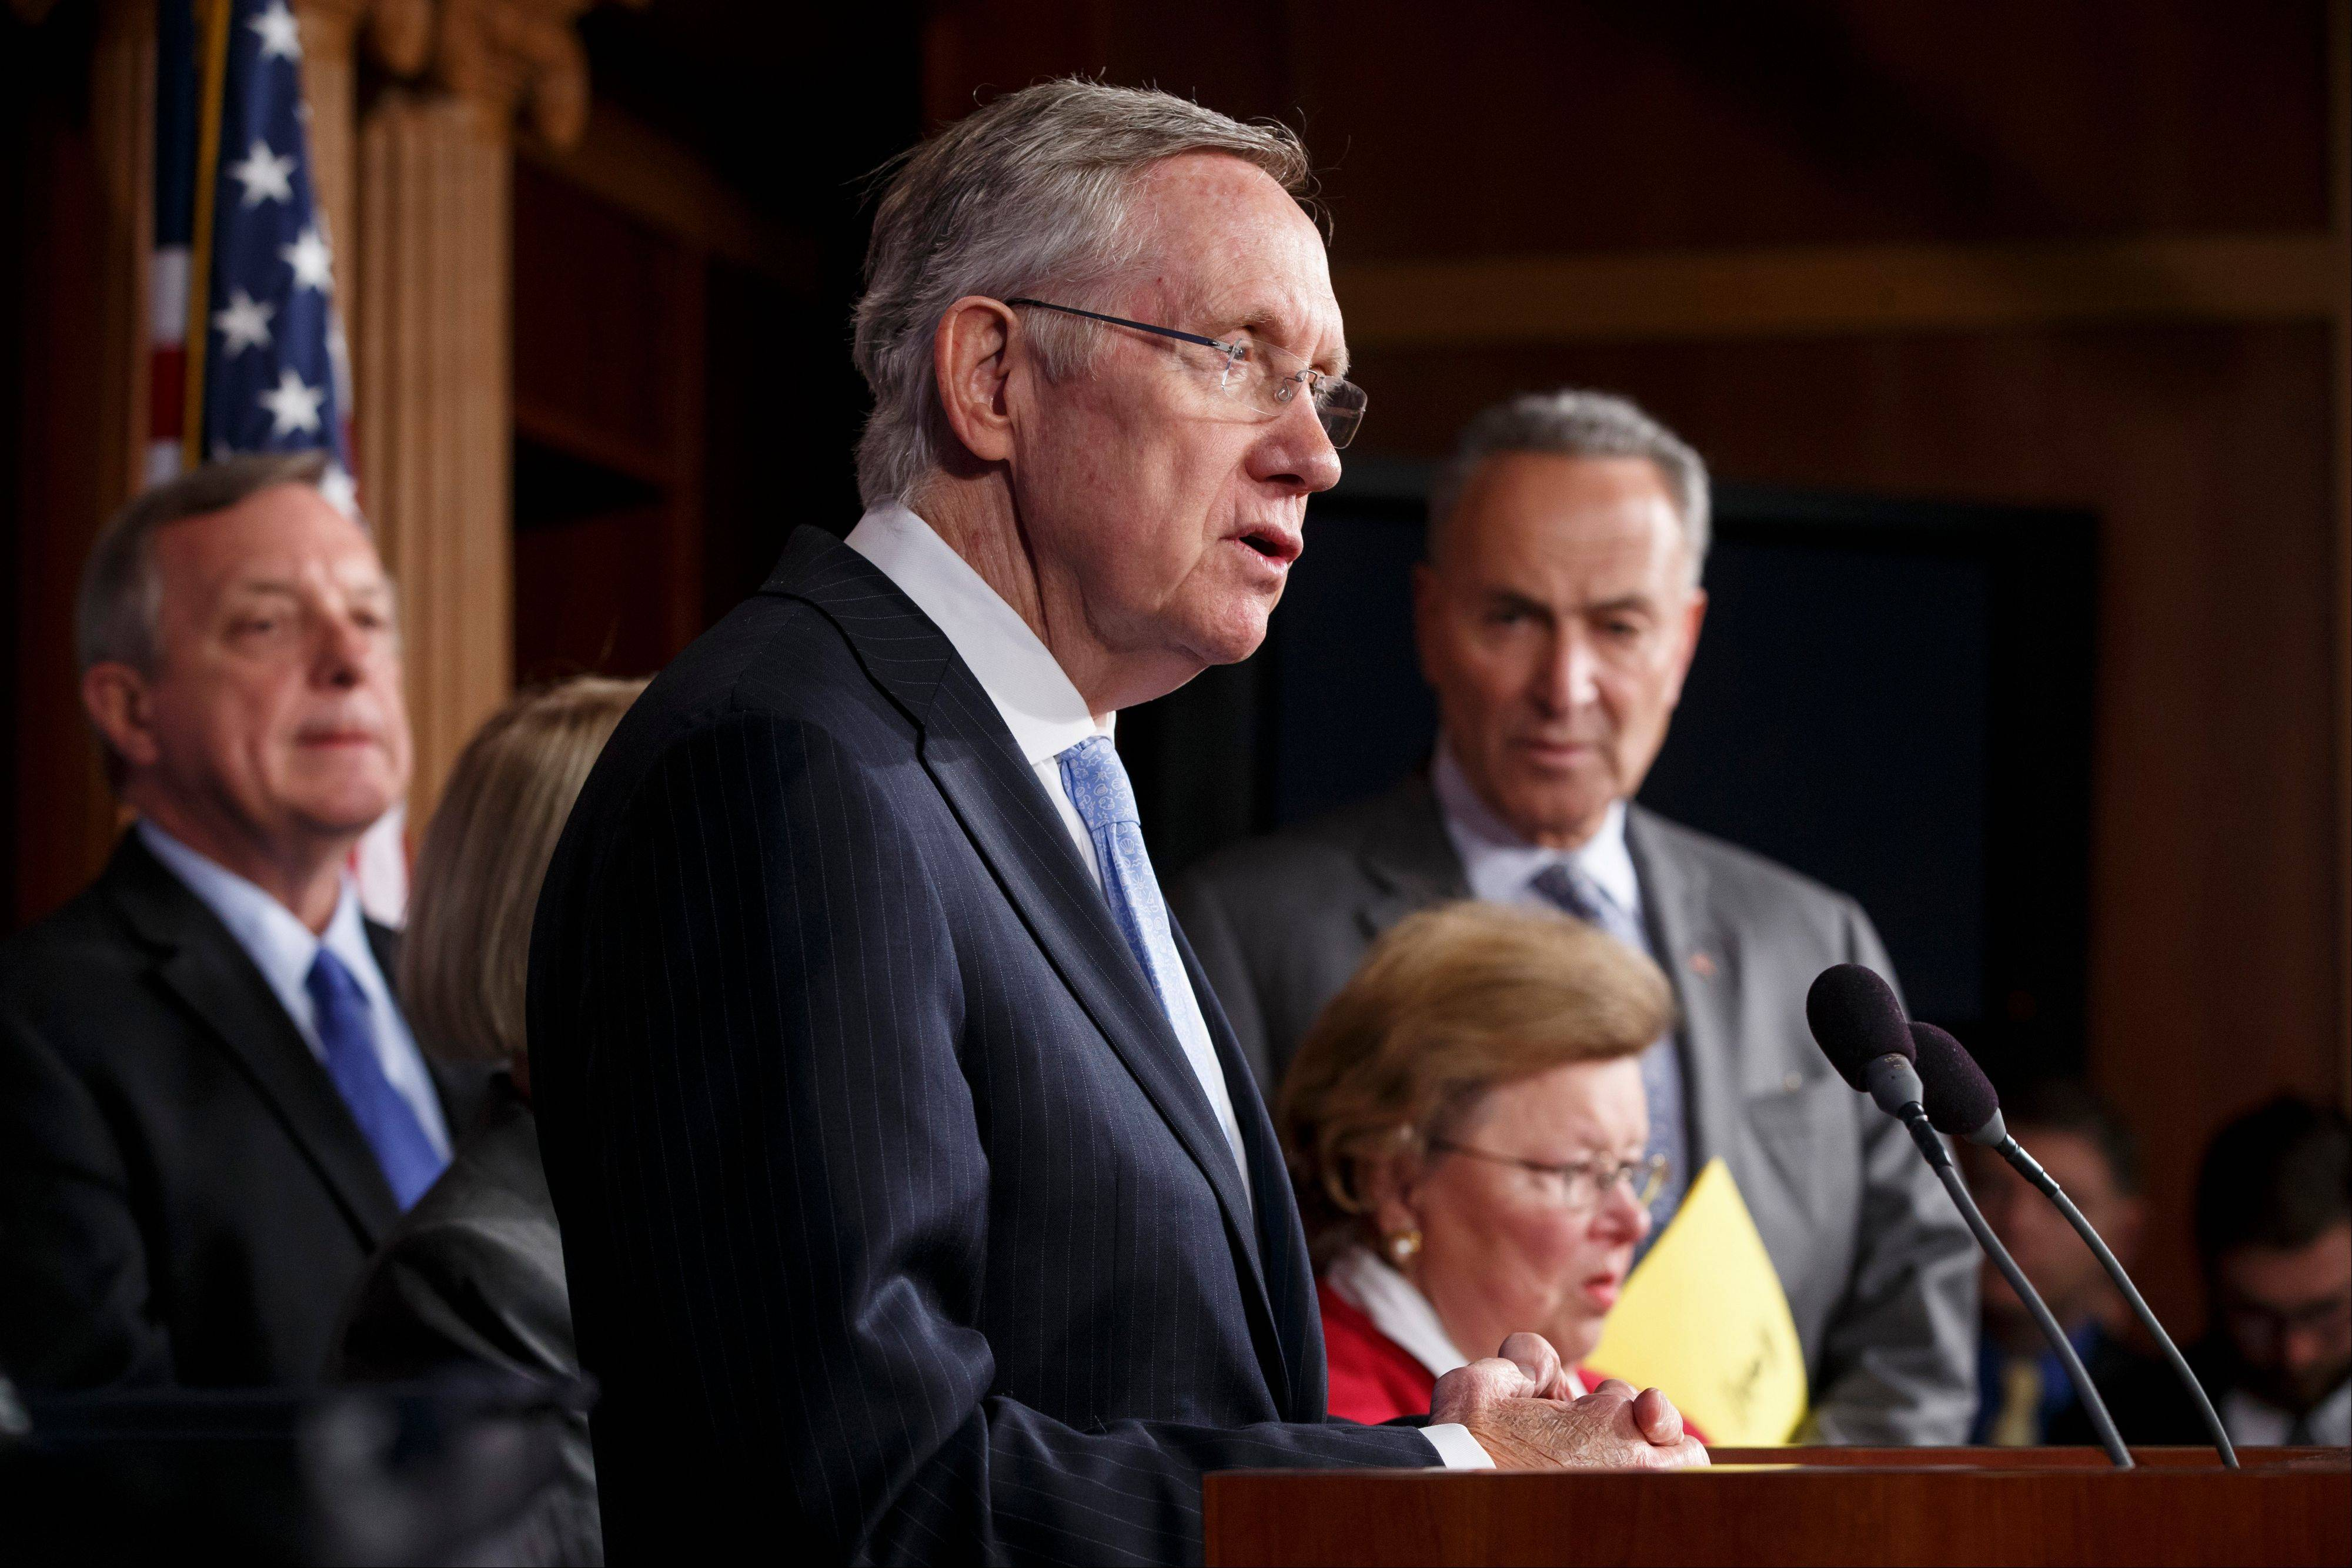 Senate Majority Leader Harry Reid of Nev., center, joined by Senate Democratic leaders, speaks during a news conference Thursday to blame conservative Republicans for holding up a stopgap spending bill to keep the government runni